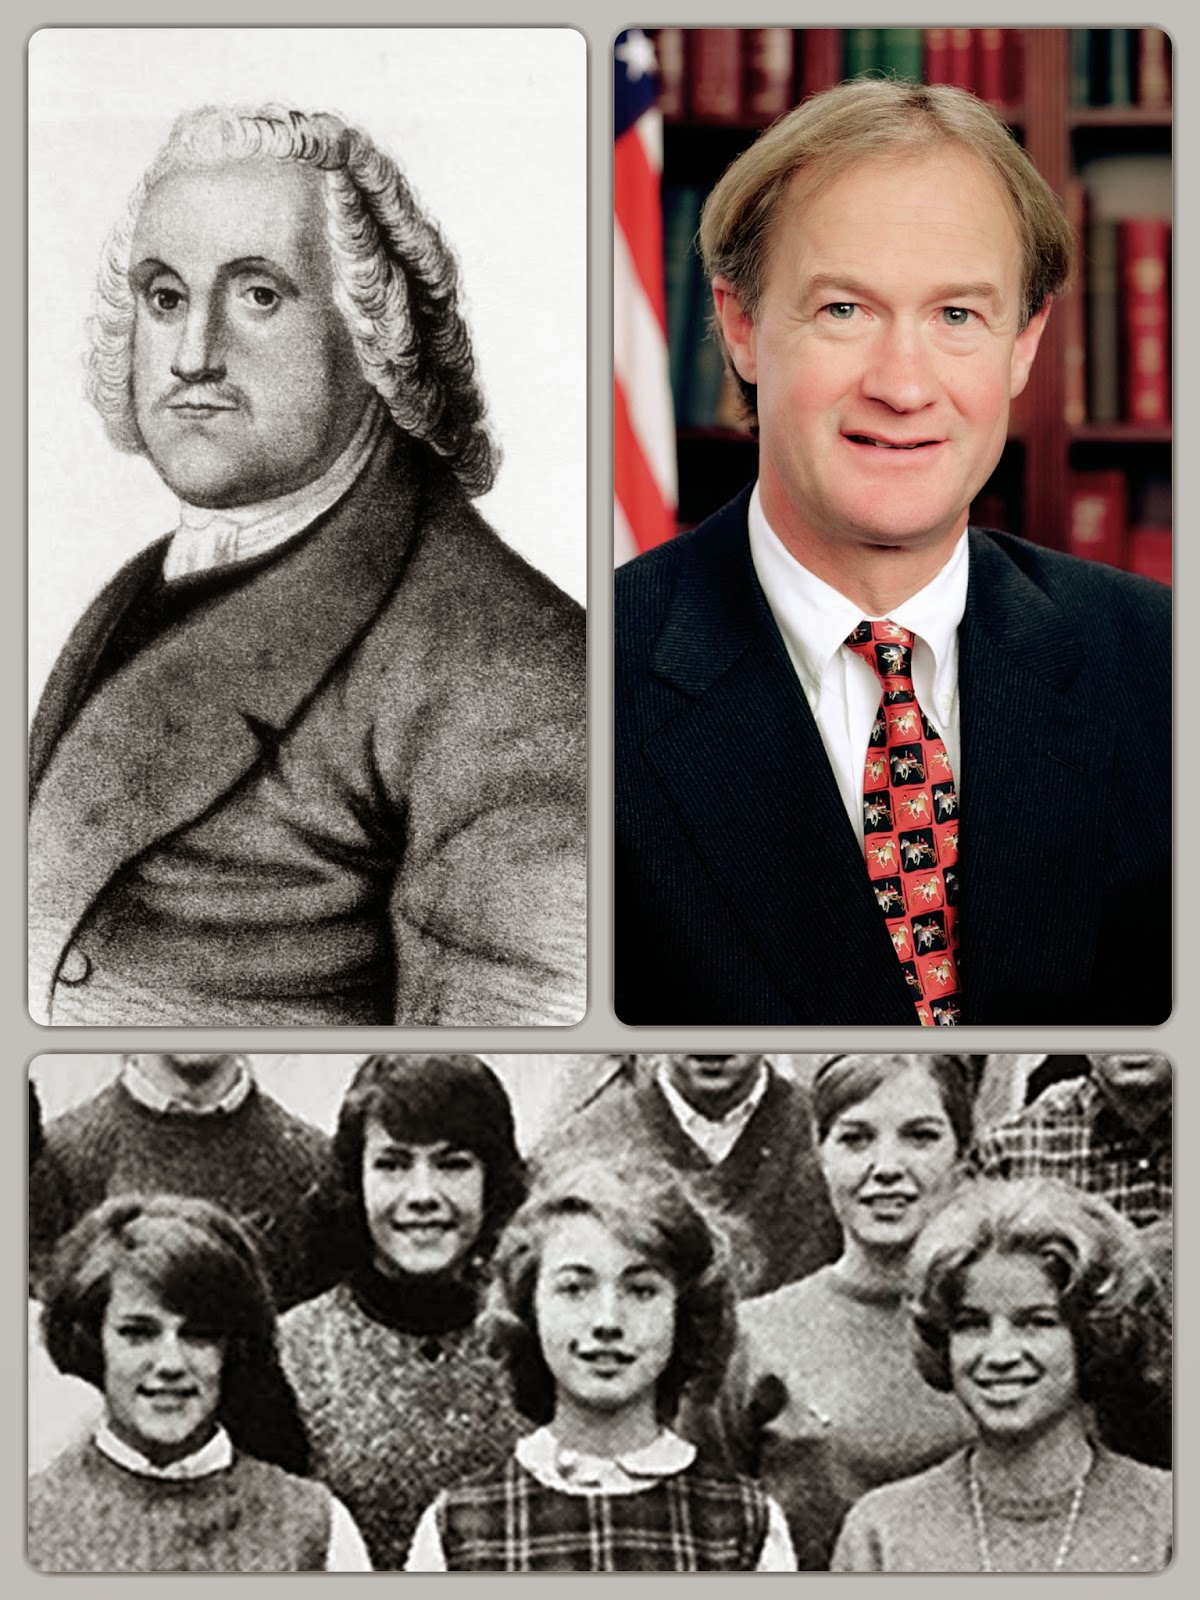 From Roger Williams to Lincoln Chafee is the story of Rhode Island